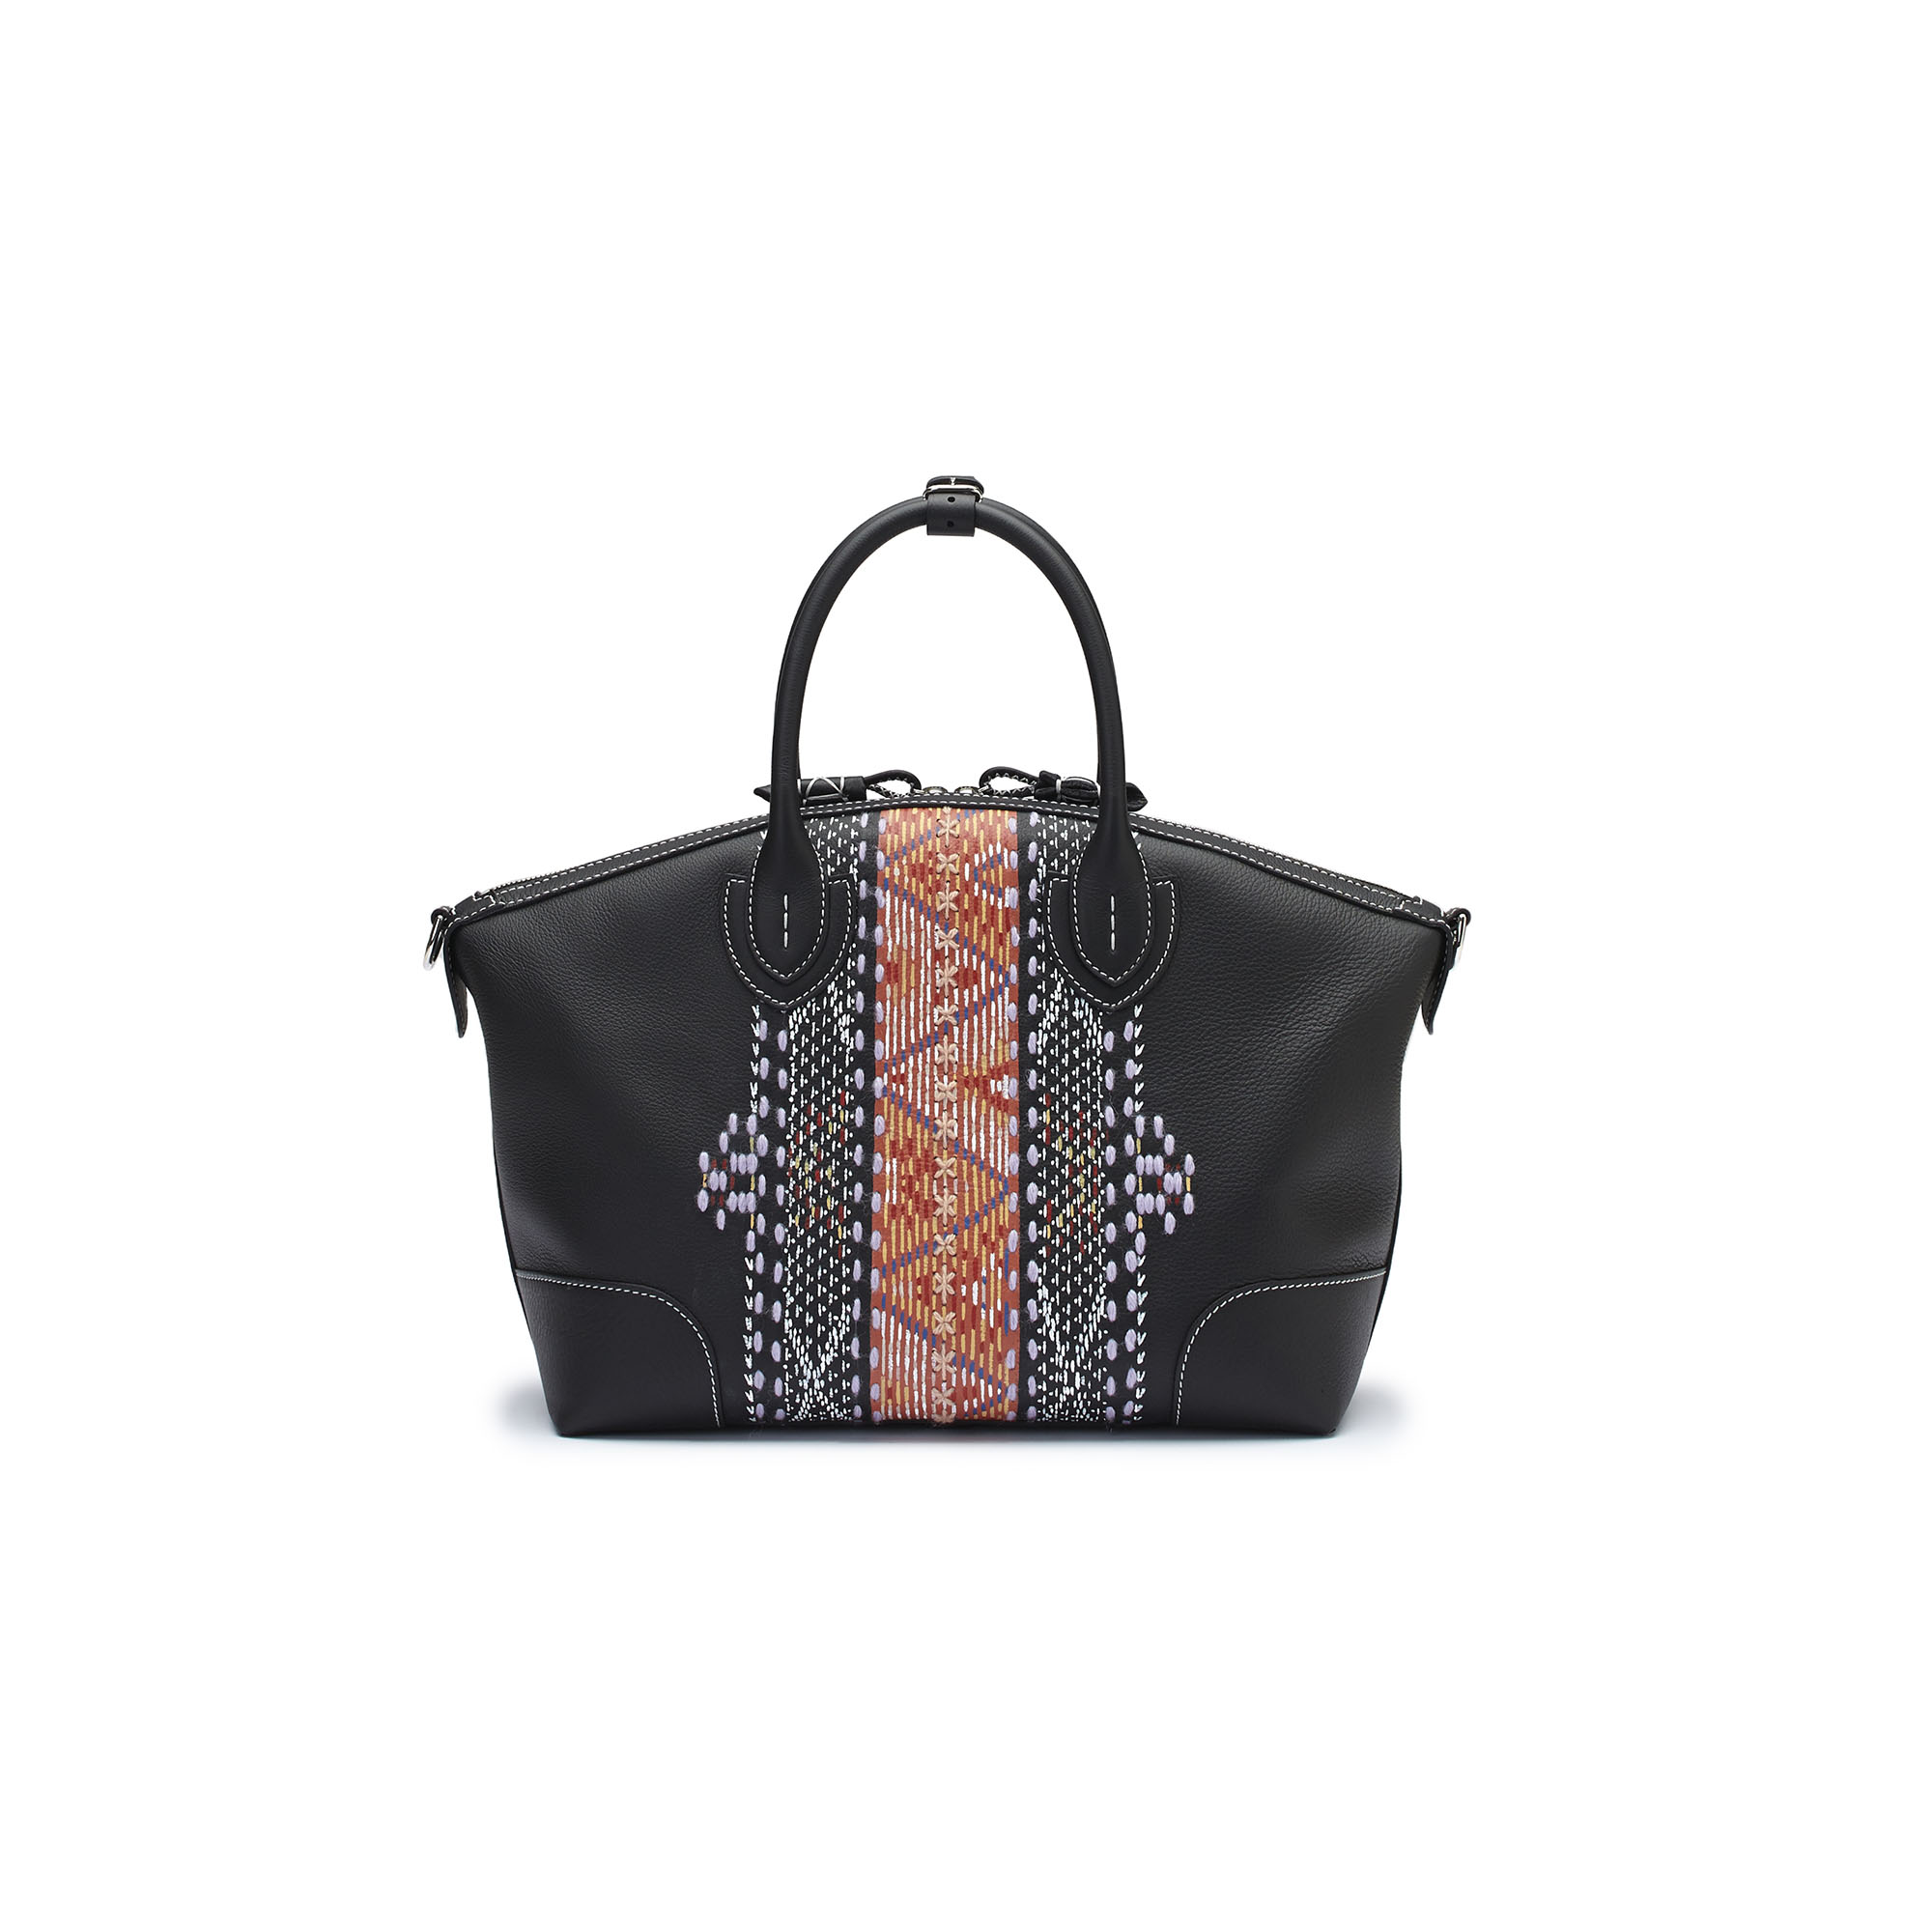 The black embroidered hand painted soft calf Anija bag by Bertoni 1949 01